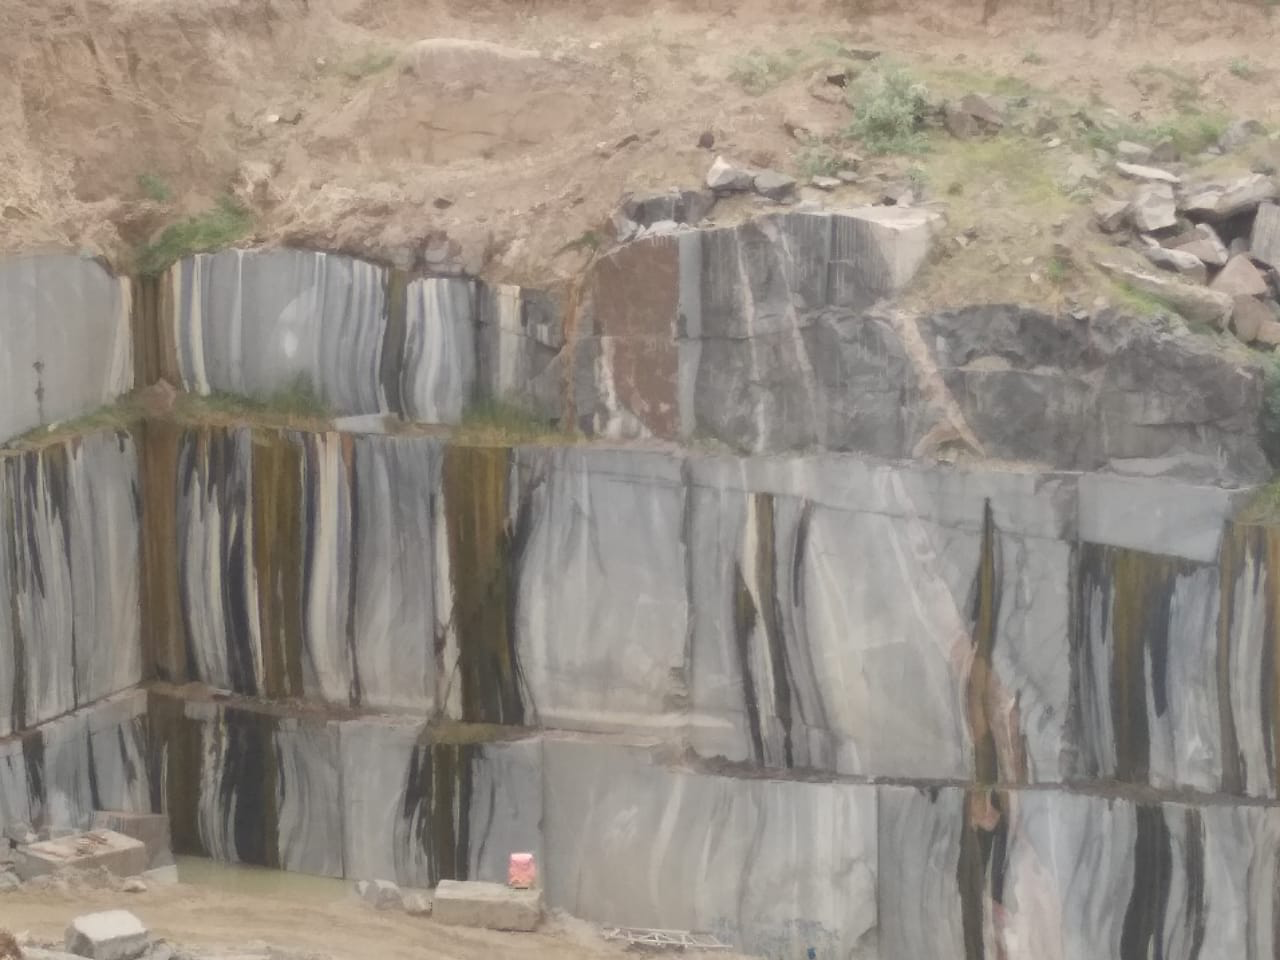 Granite Quarry in Andhra Pradesh, India